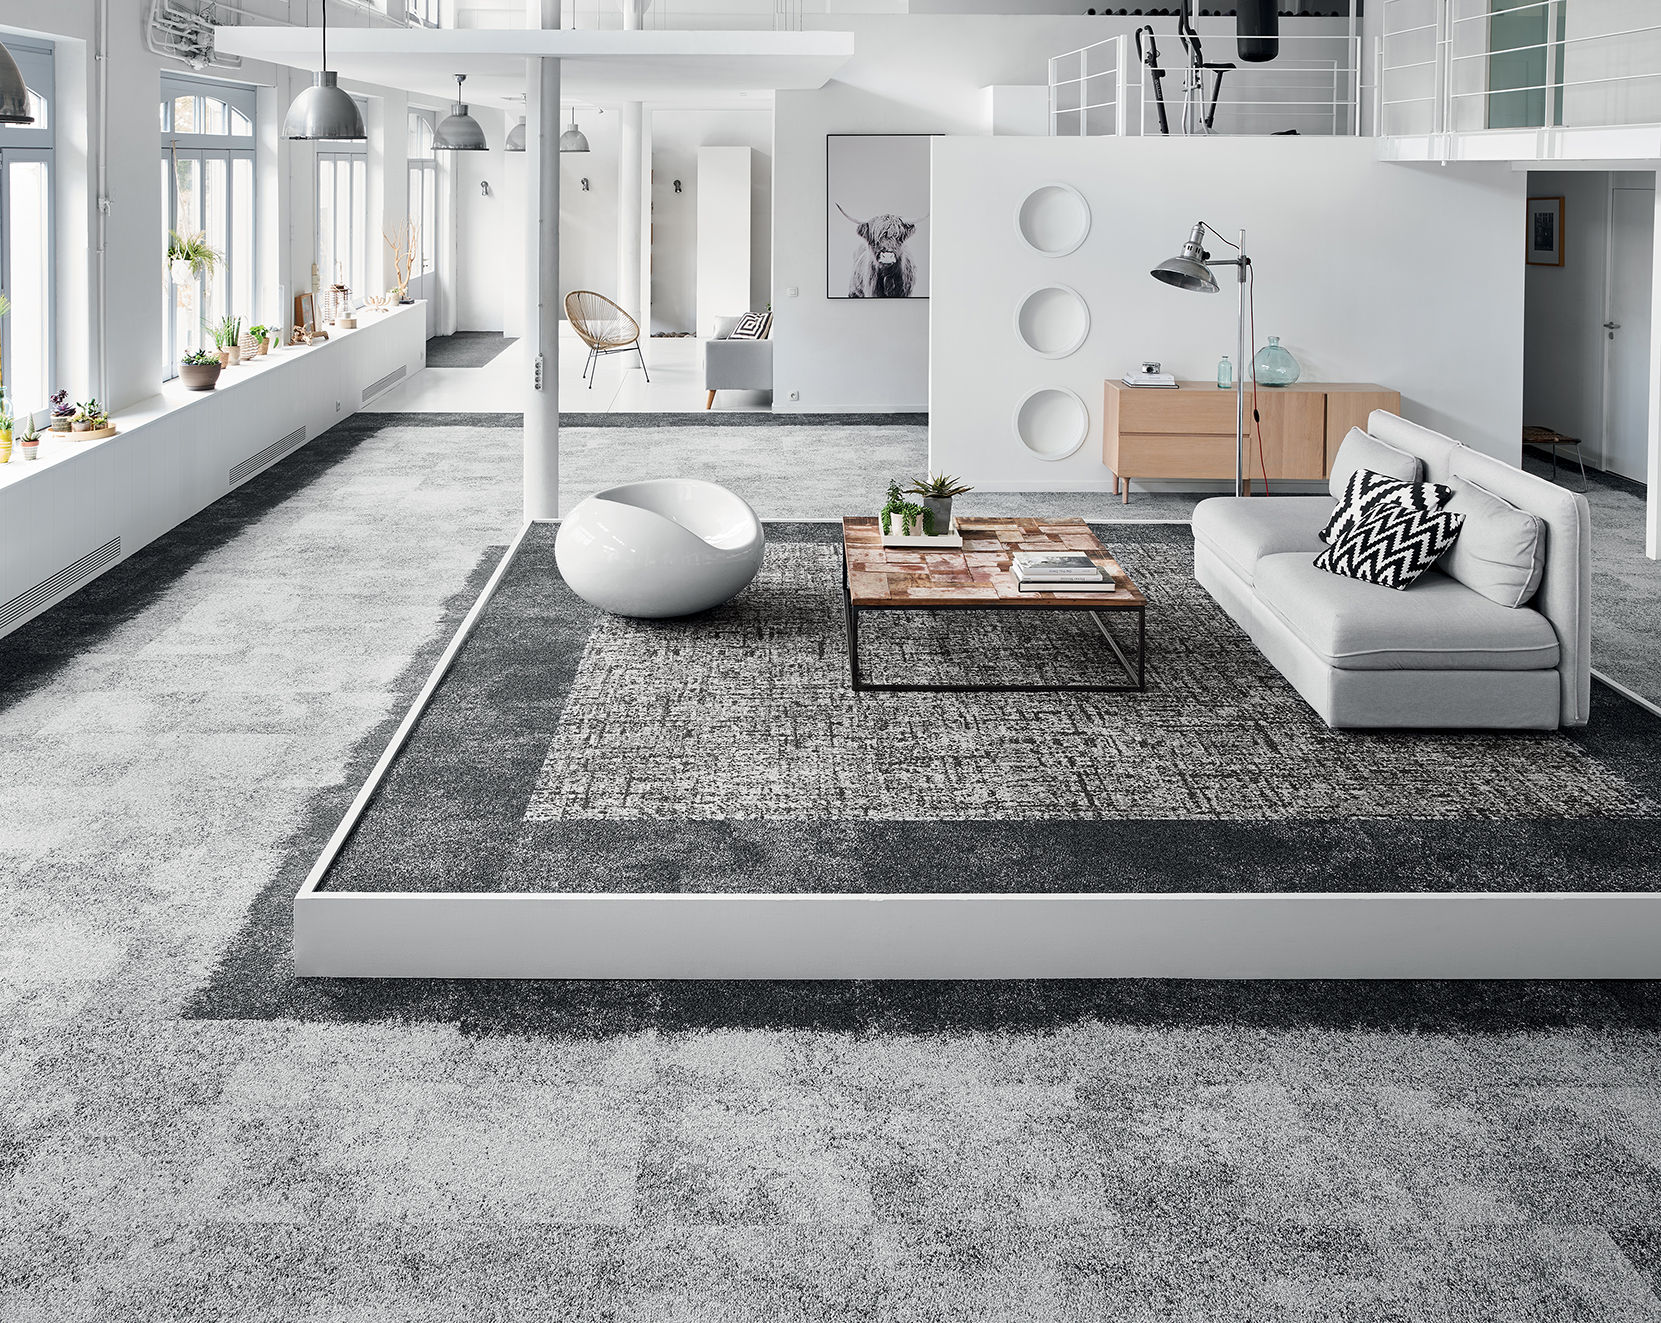 Nexus Concept Carpet Tiles Developed With Mbrodery Tuft Technology Balsan